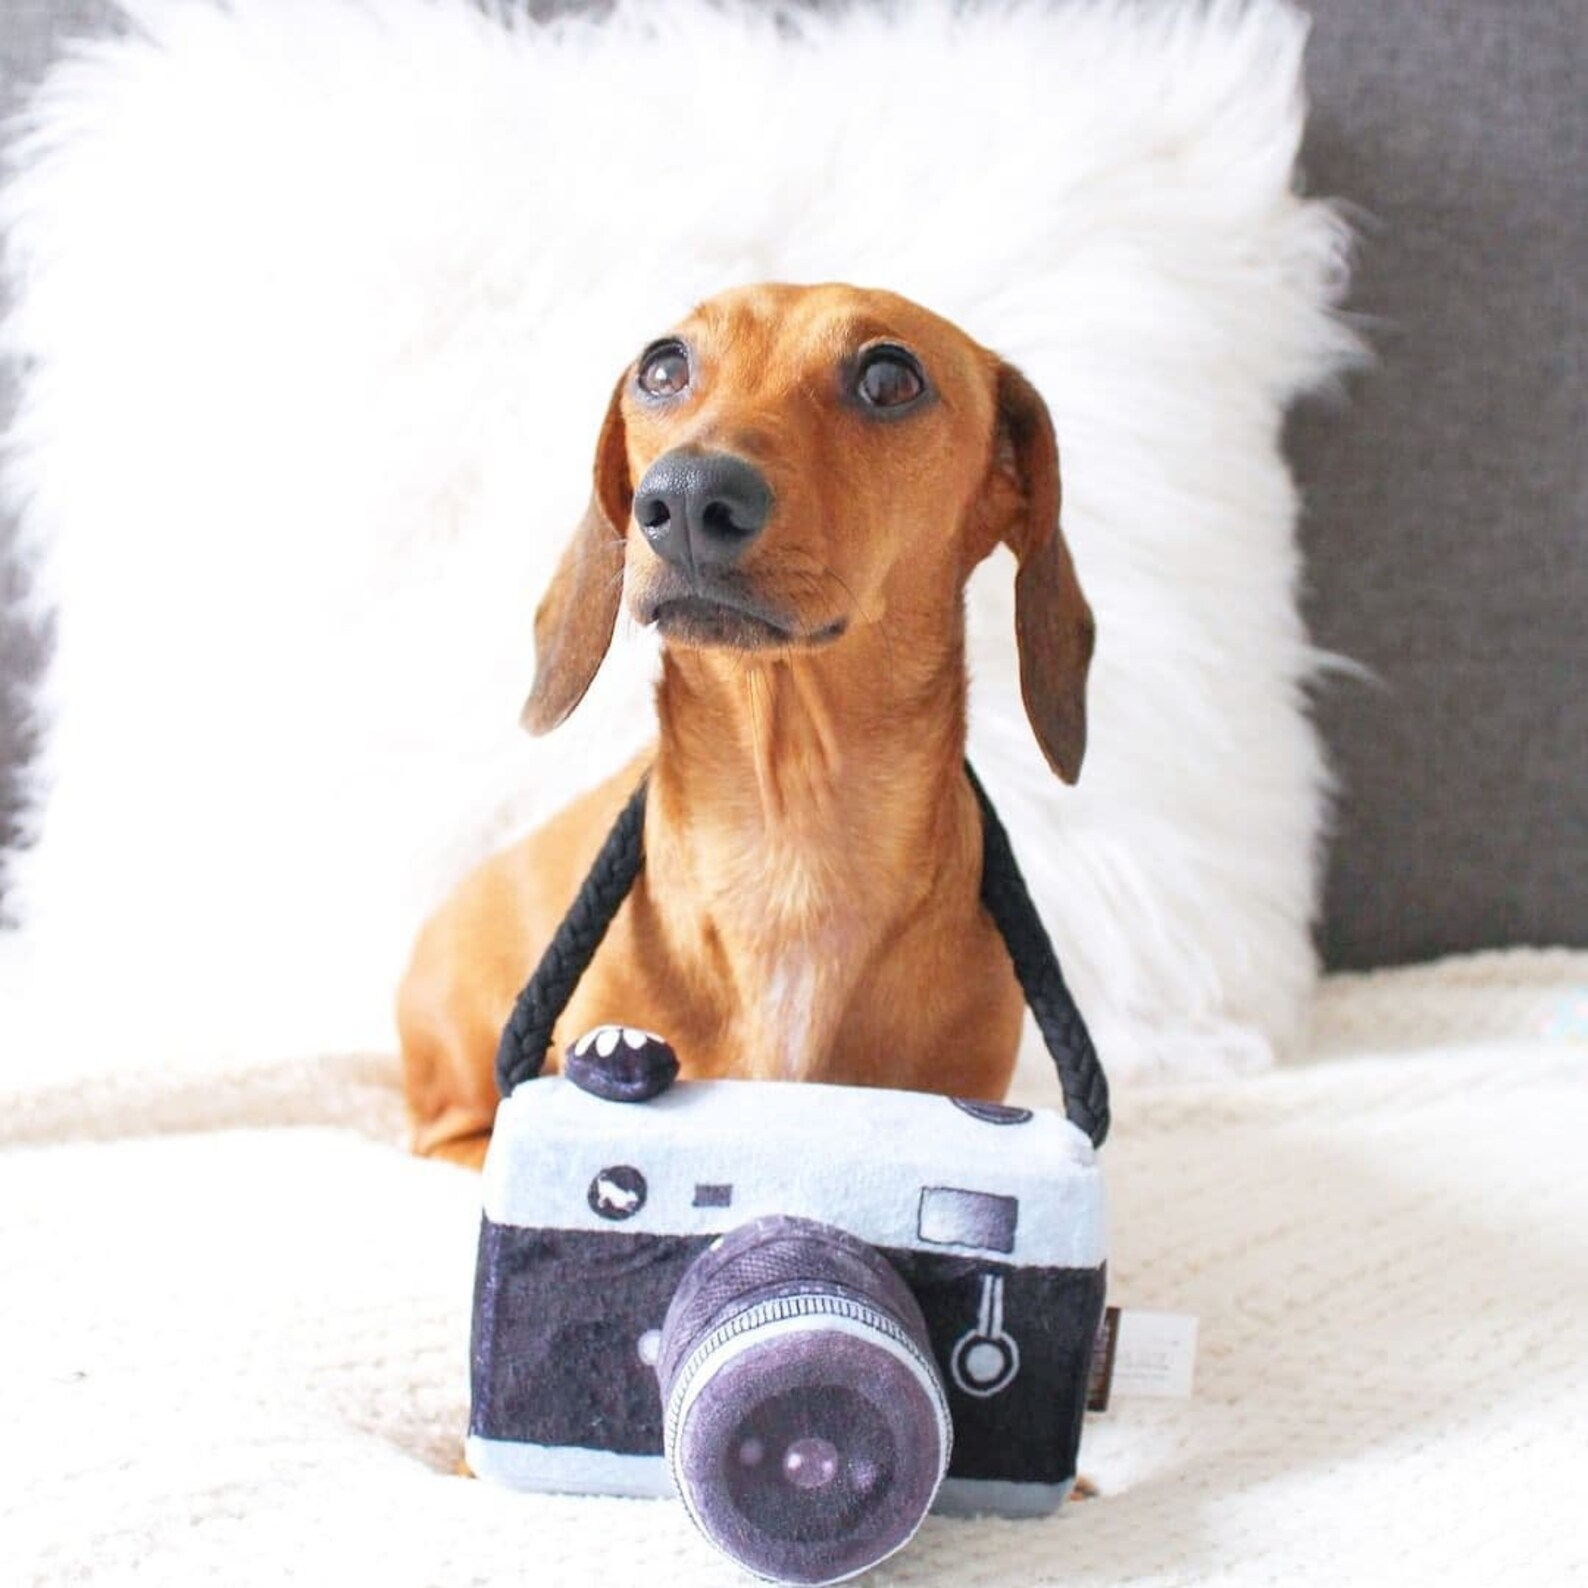 Dog posing with camera toy